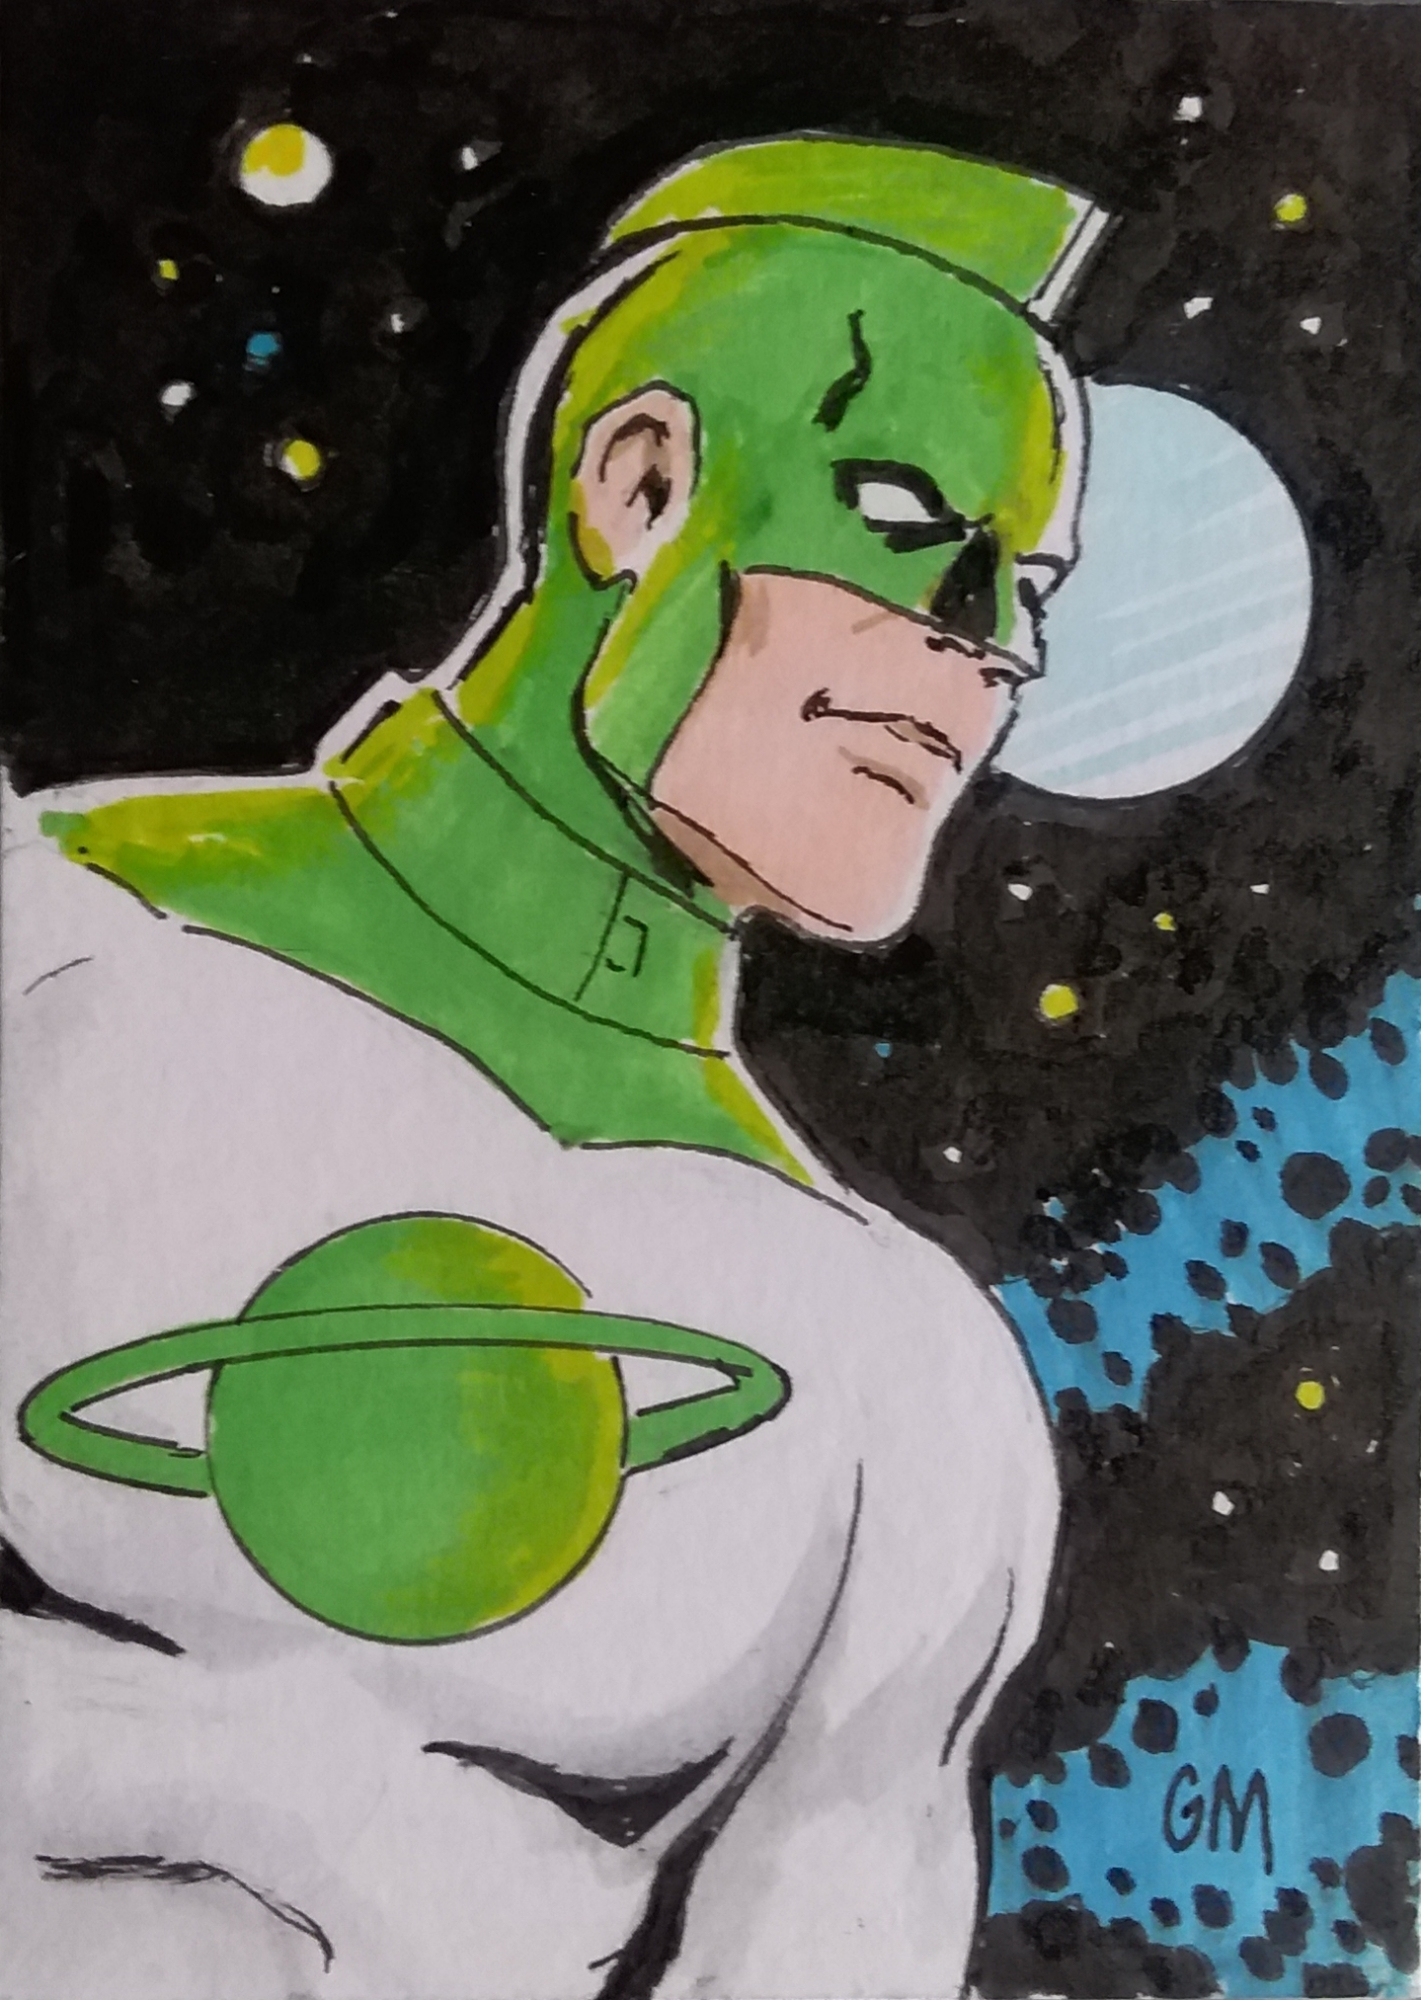 Captain Marvel Mar Vell Green And White Costume Sketch Card In Arthur Chertowsky S Marvel Sketch Cards Not Part Of Sets Various Artists Comic Art Gallery Room Captain america's uniform were sets of uniforms used by captain steve rogers which served as his outfit during his superhero exploits. captain marvel mar vell green and